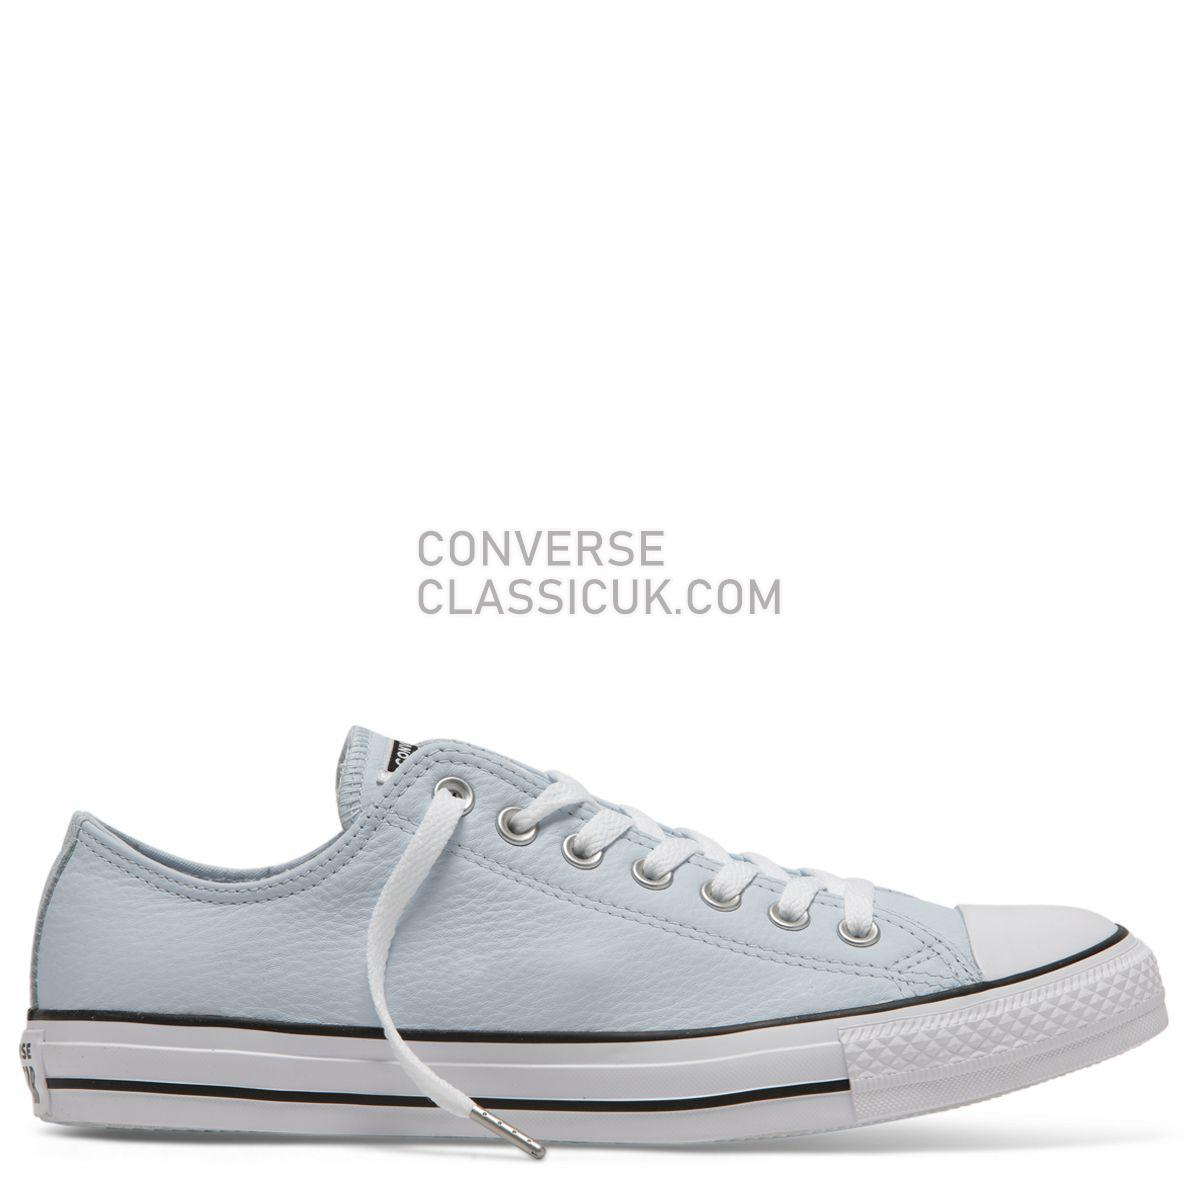 Converse Chuck Taylor All Star Leather Low Top Blue Tint Mens 162041 Blue Tint/White/Black Shoes